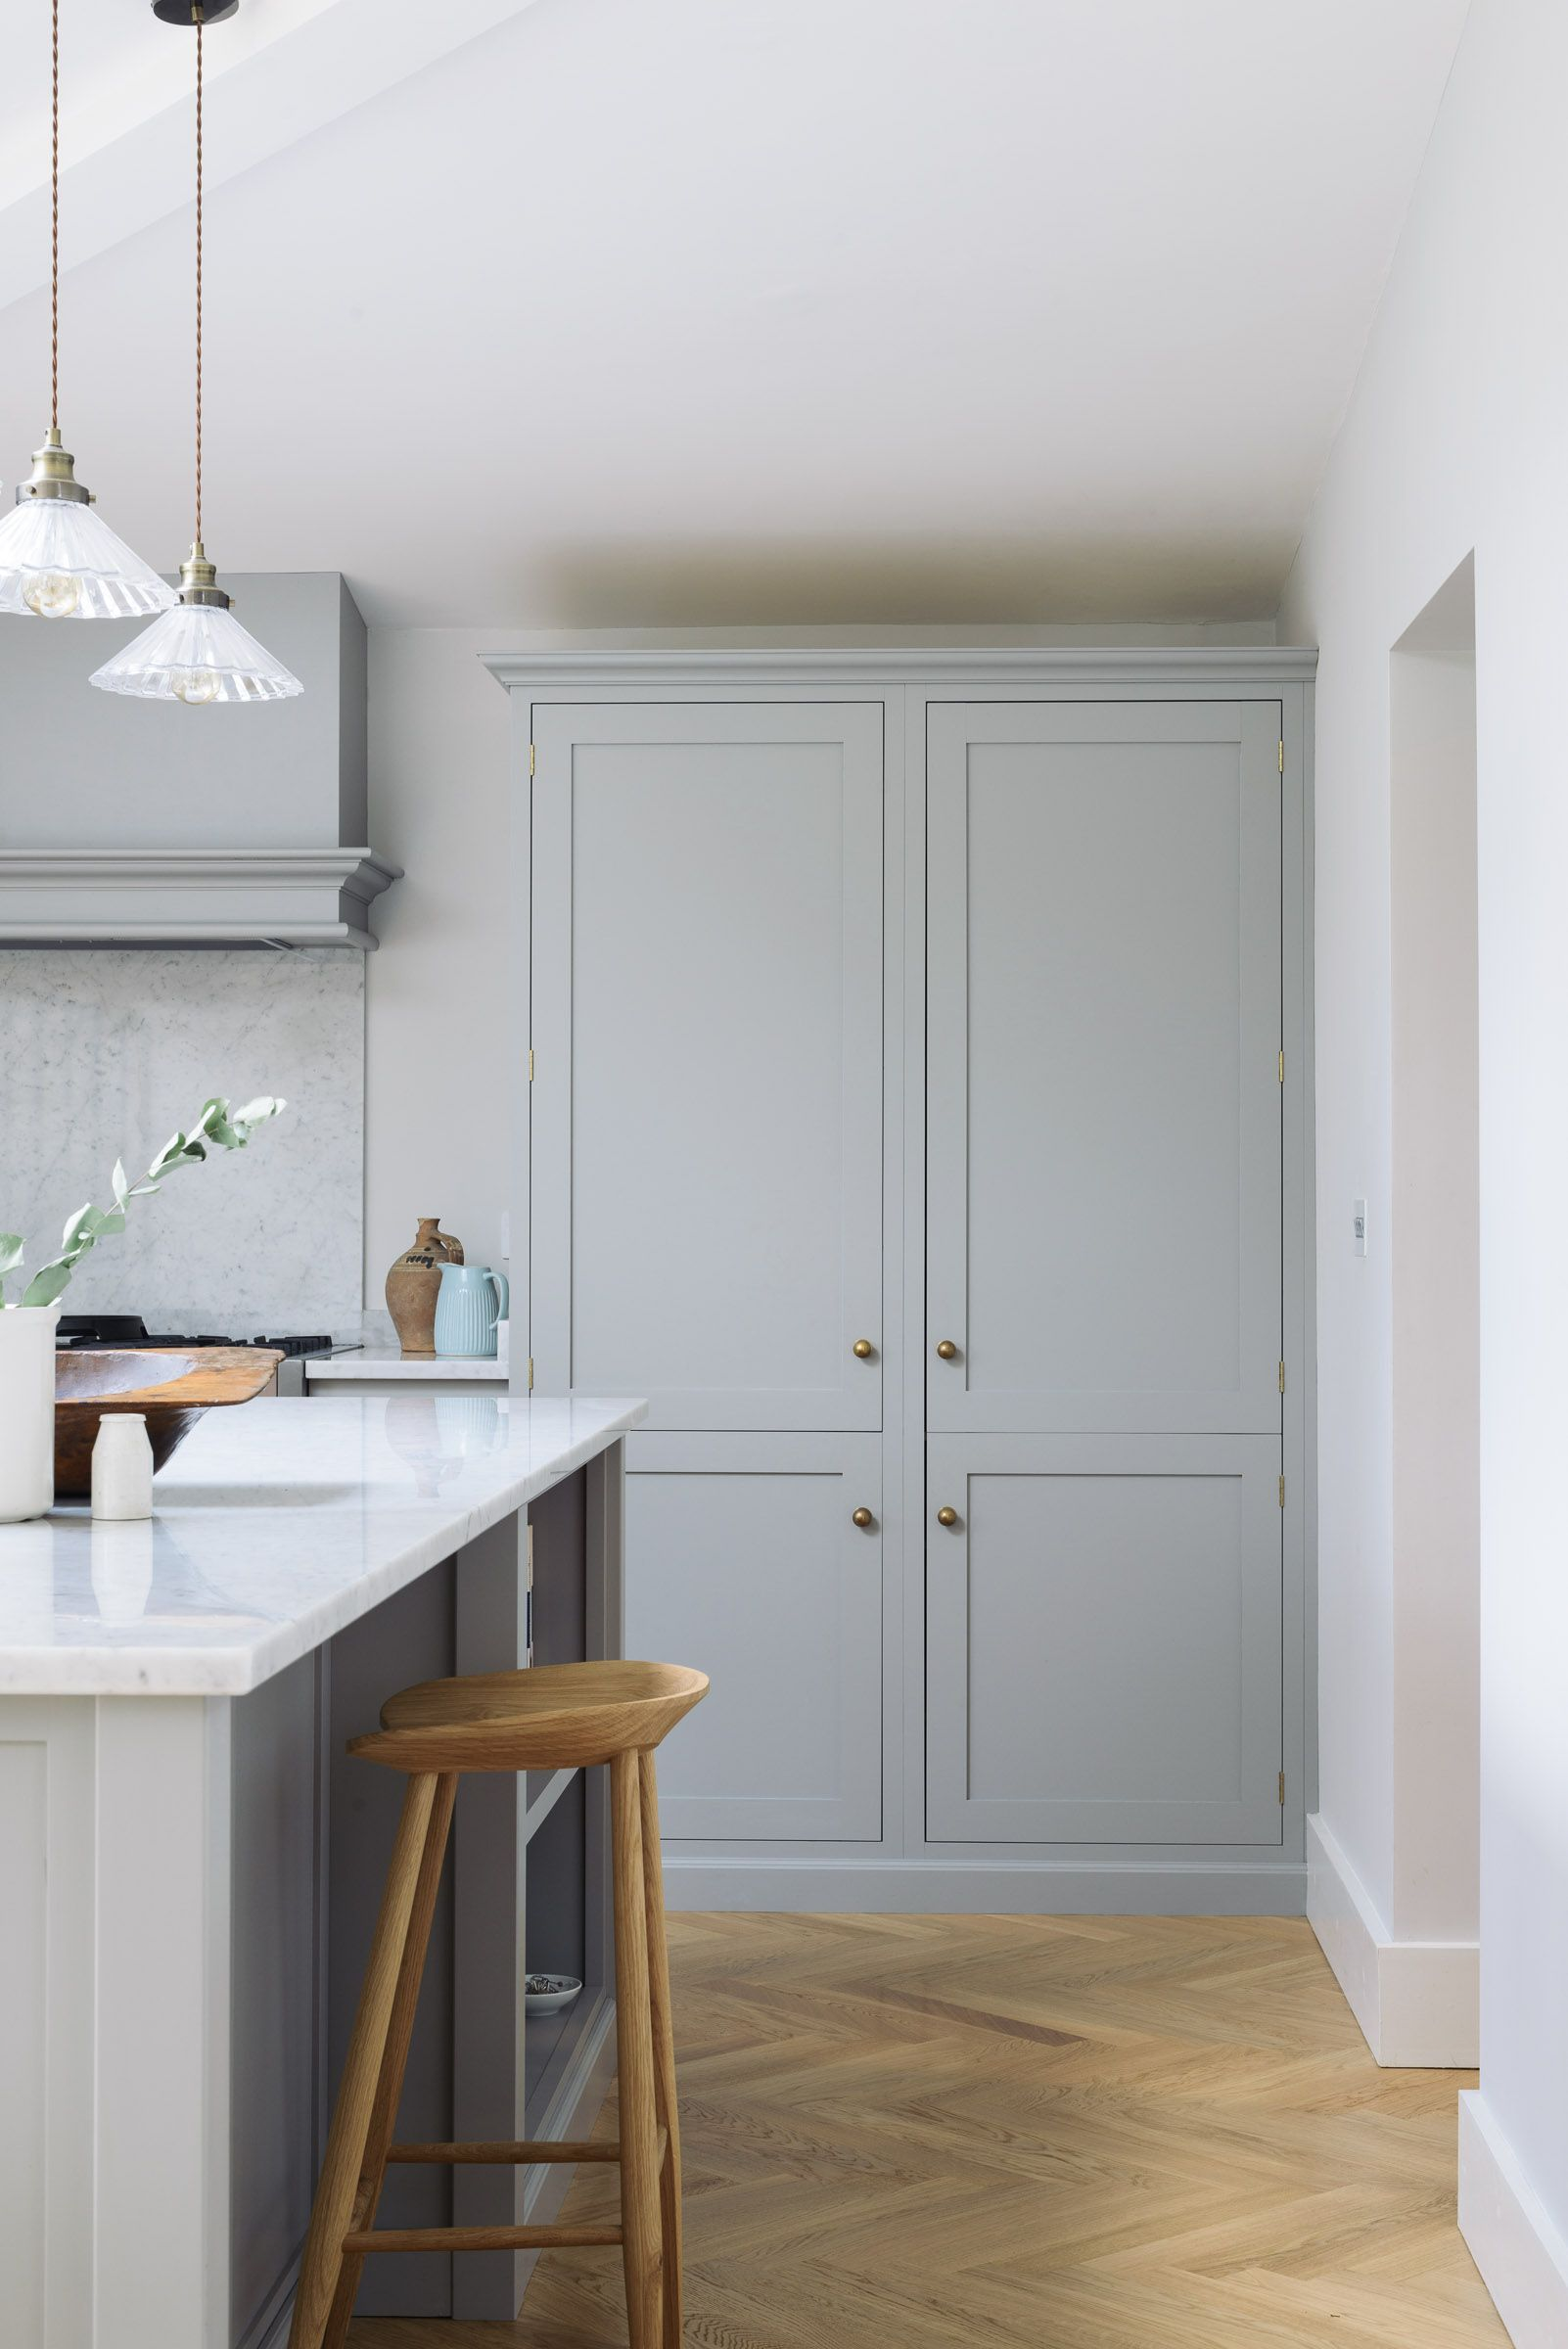 A Wonderful Big Larder Cupboard Provides Lots Of Storage In This Shaker Kitchen Home Decor Kitchen Devol Kitchens Shaker Kitchen